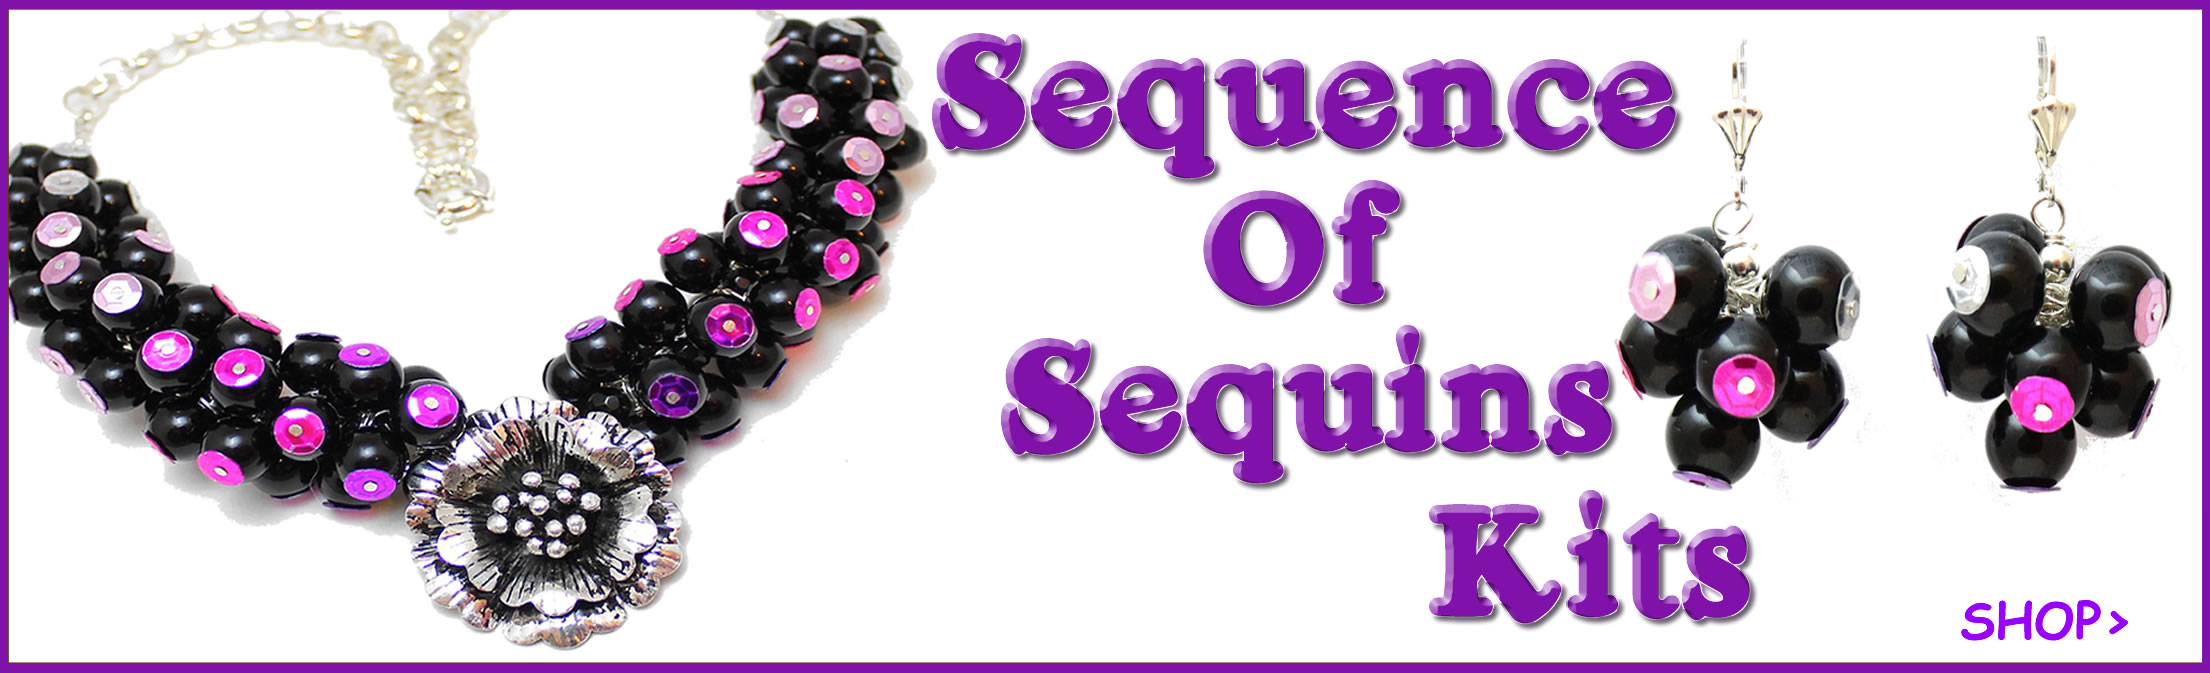 Sequence of Sequins Necklace and earring Kits available